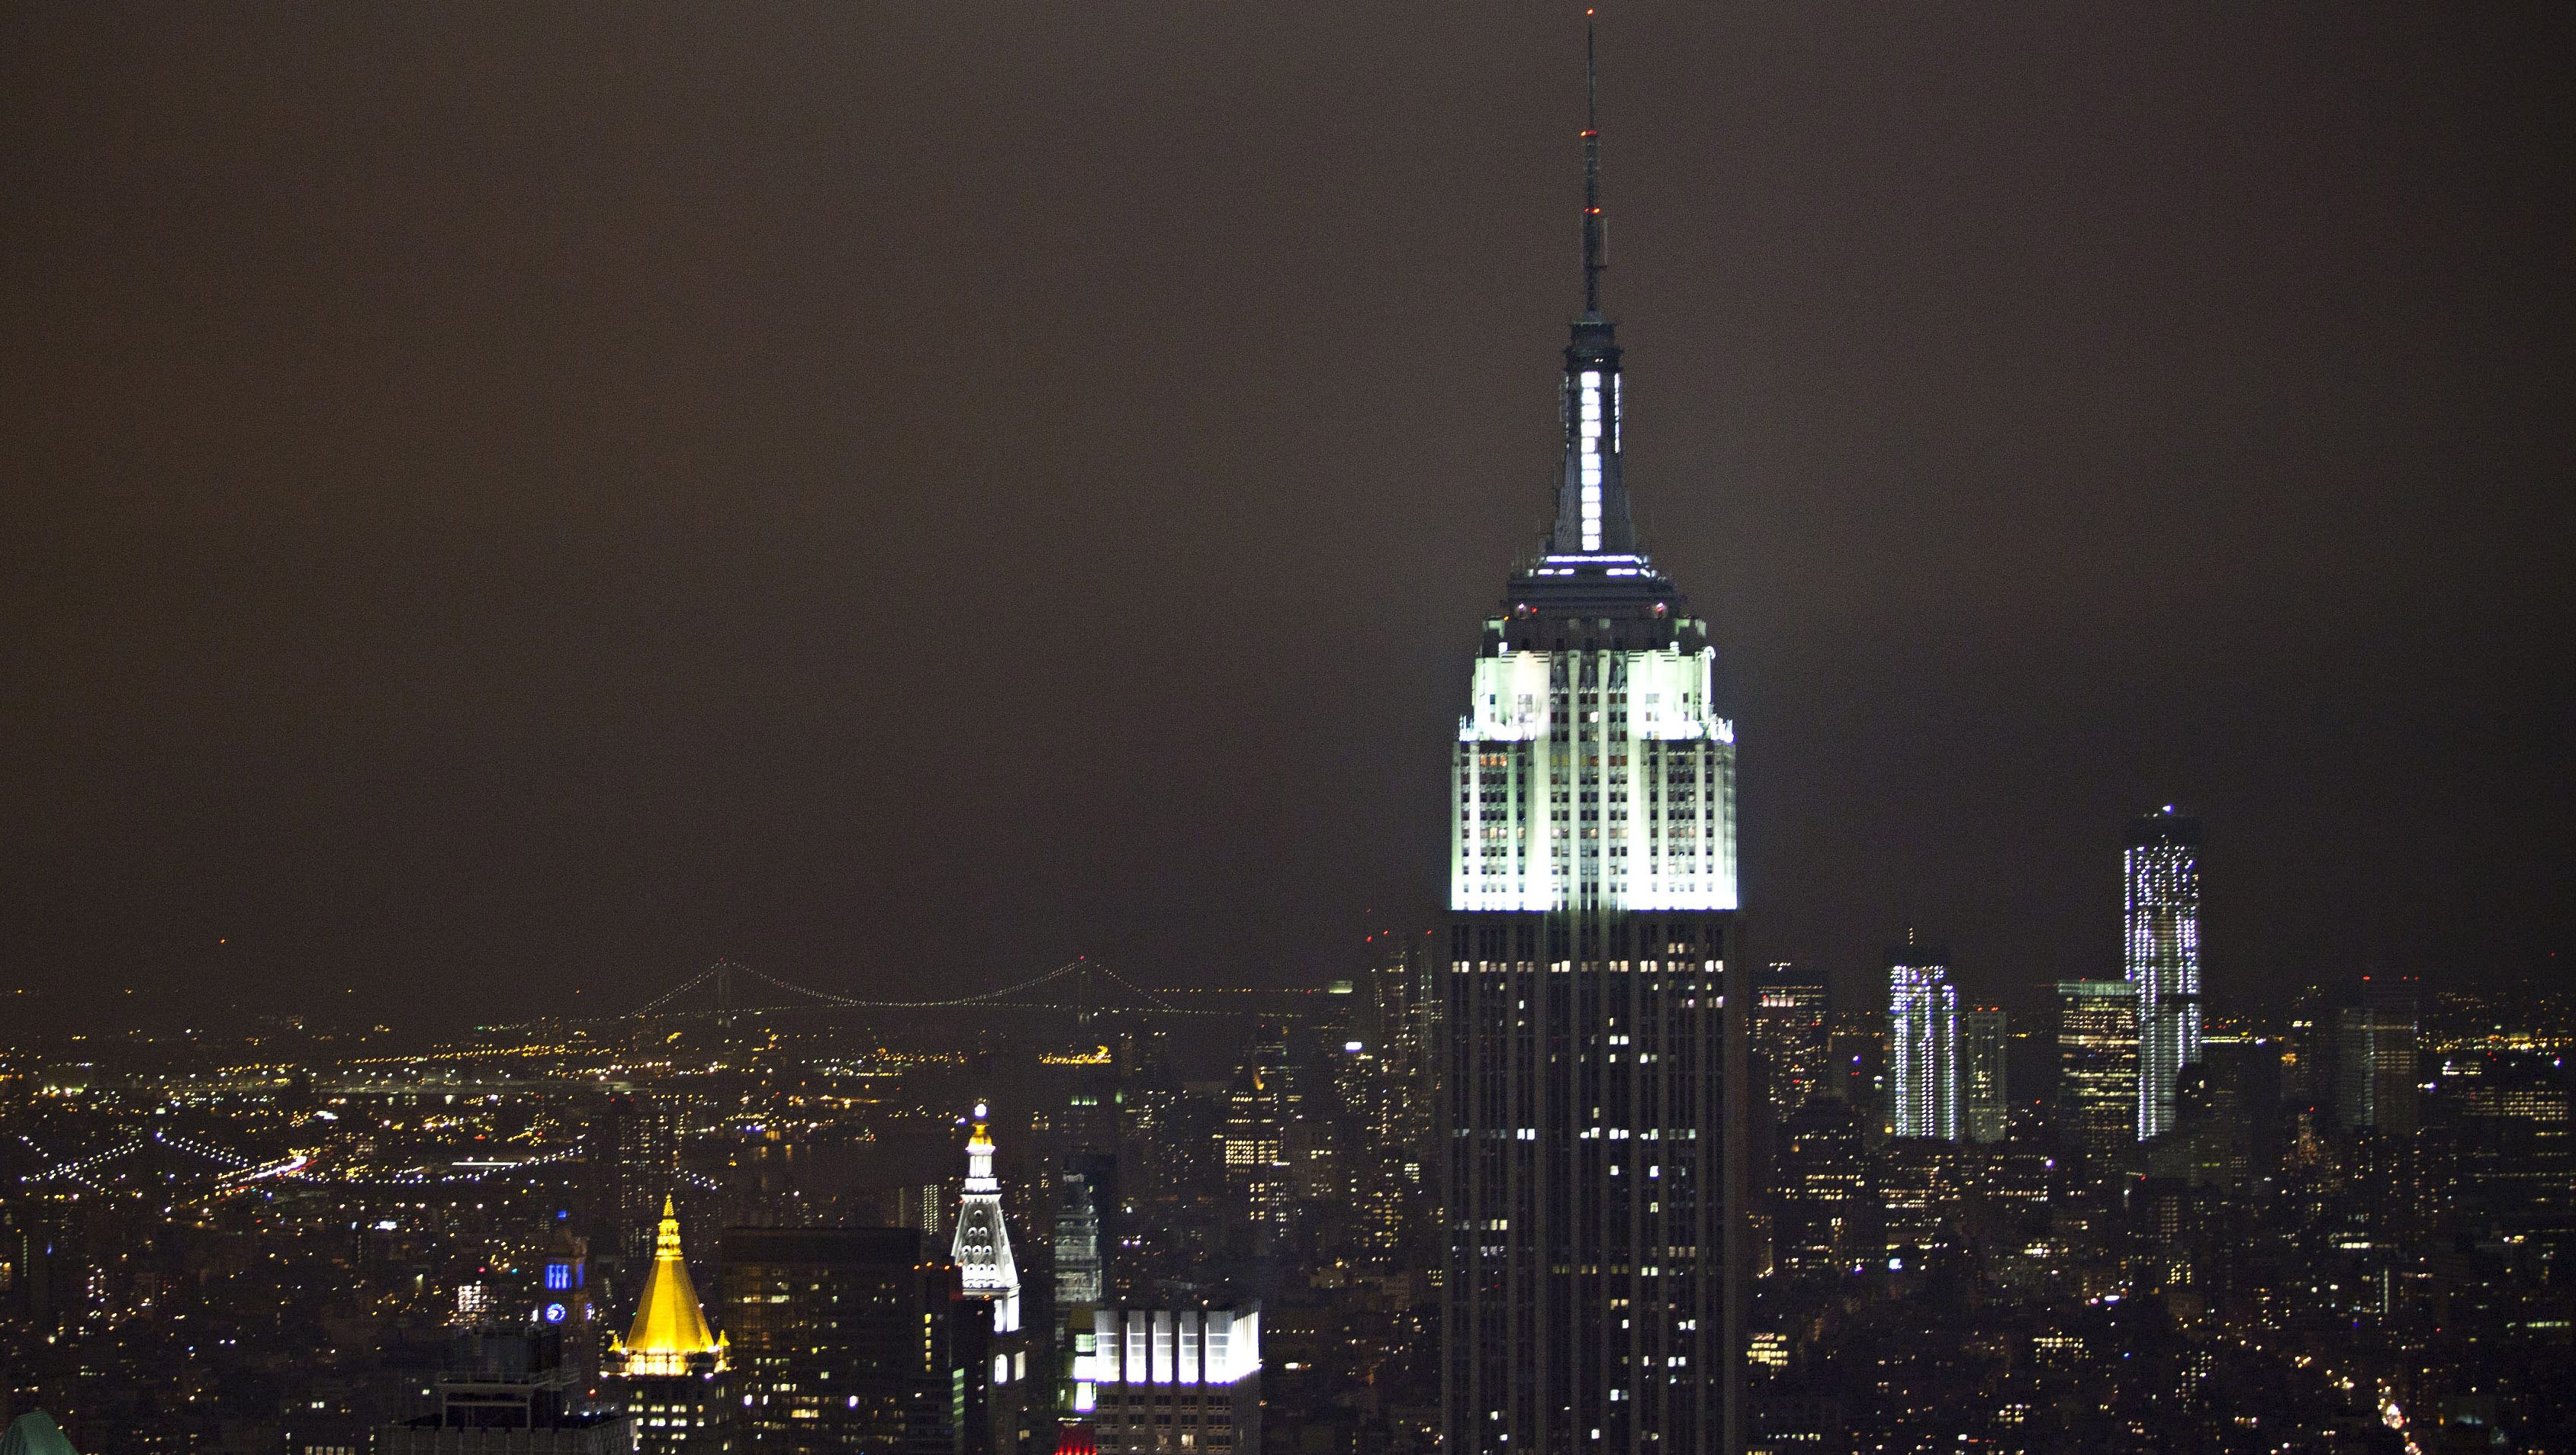 The Empire State Building is seen with the lights switched back on after participating in Earth Hour, in New York, March 31, 2012. Lights started going off around the world on Saturday in a show of support for renewable energy. REUTERS/Andrew Burton